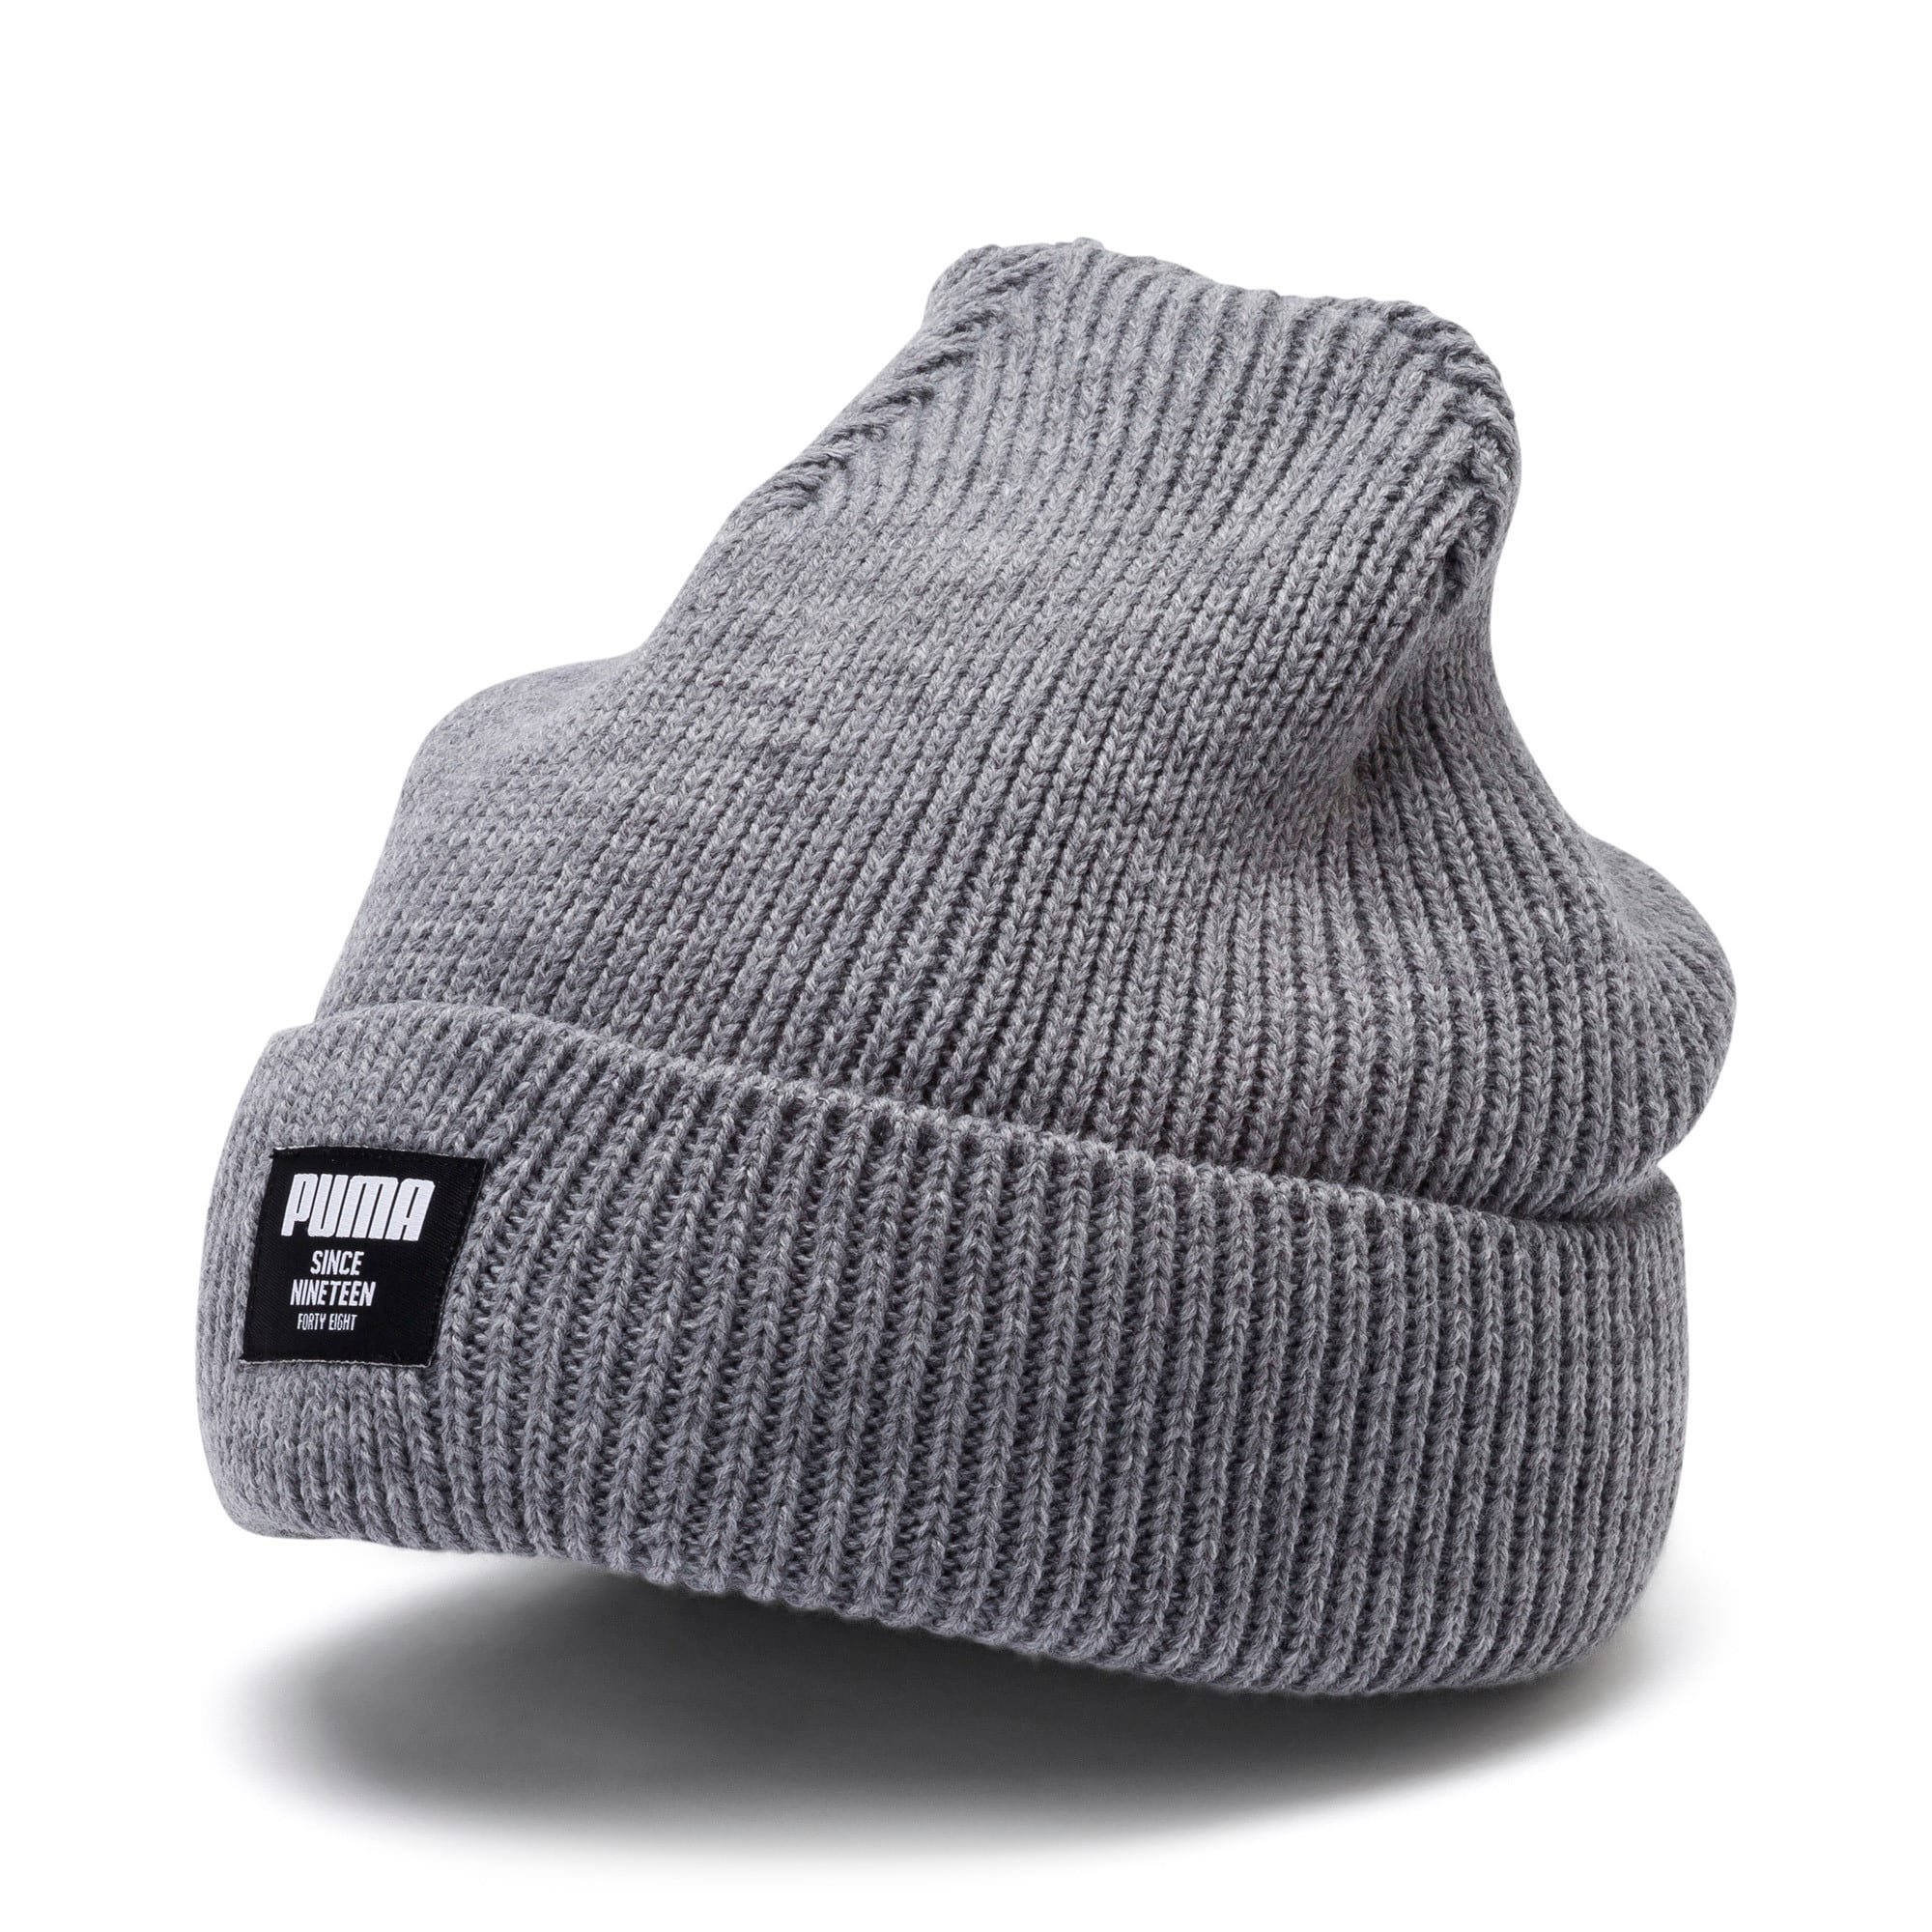 Thumbnail 1 of Bonnet Ripp classique, Medium Gray Heather, medium